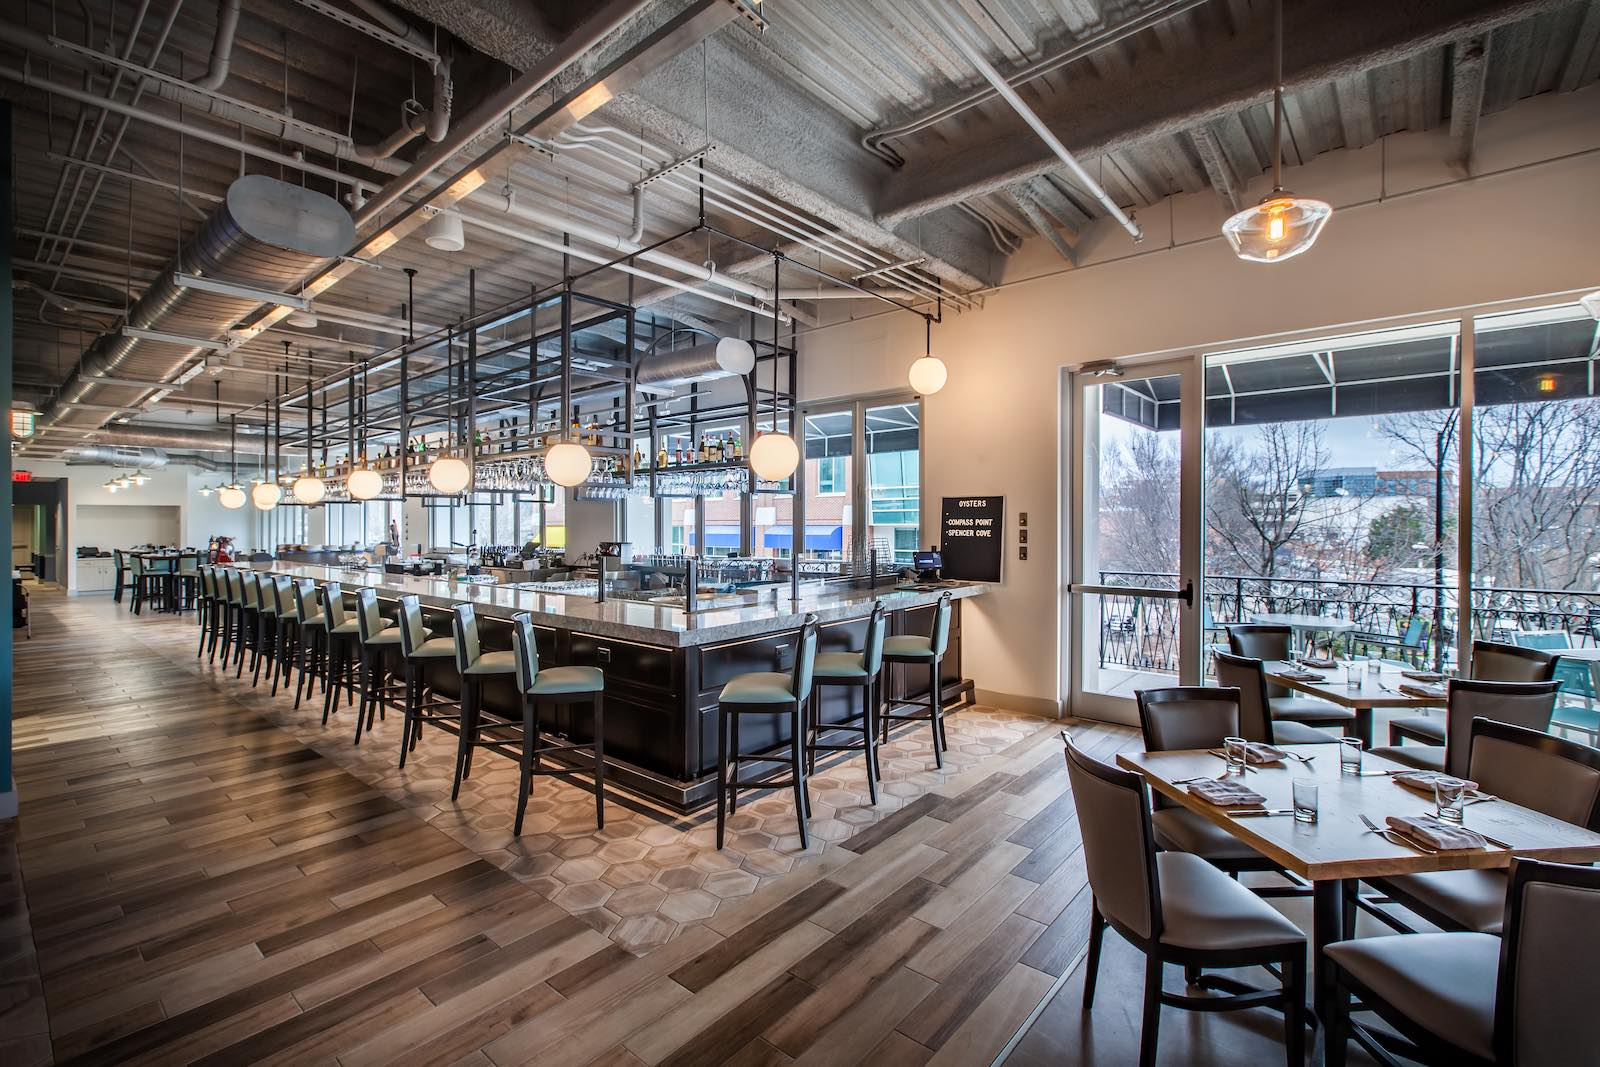 At Jianna in Greenville Chef Michael Kramer puts the oyster bar front and center